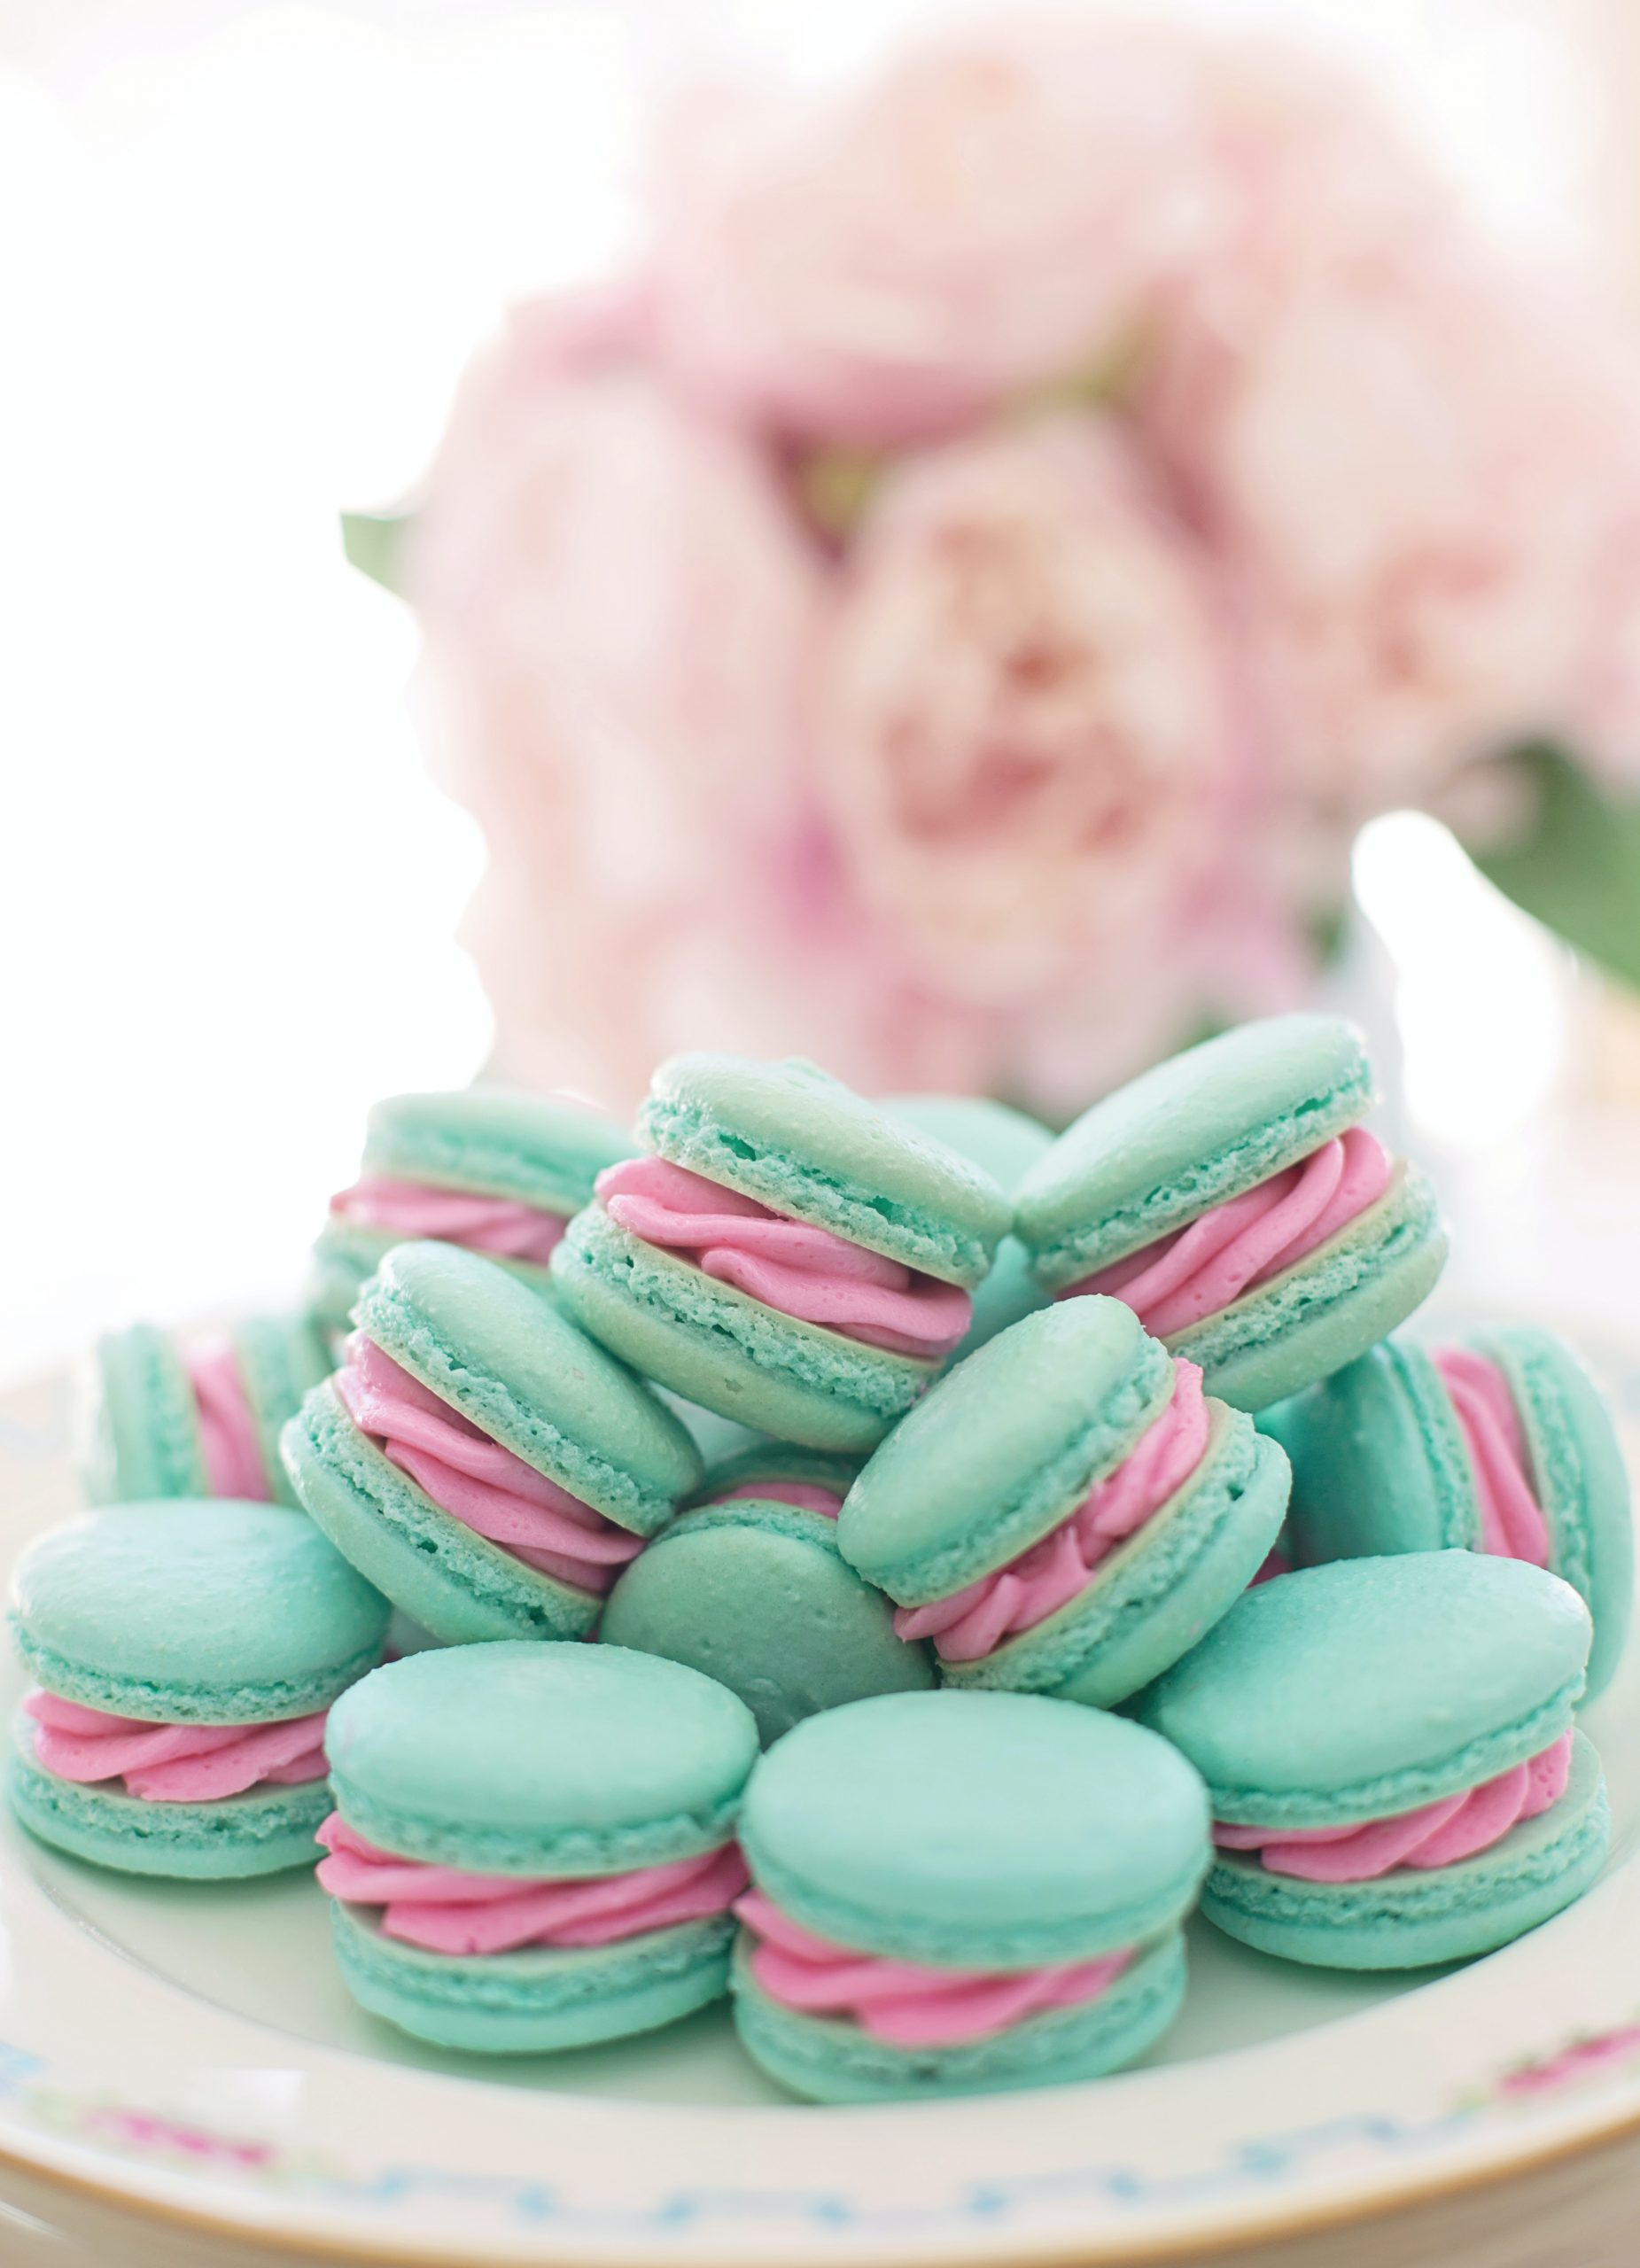 pleasing a gentle femdom with macarons